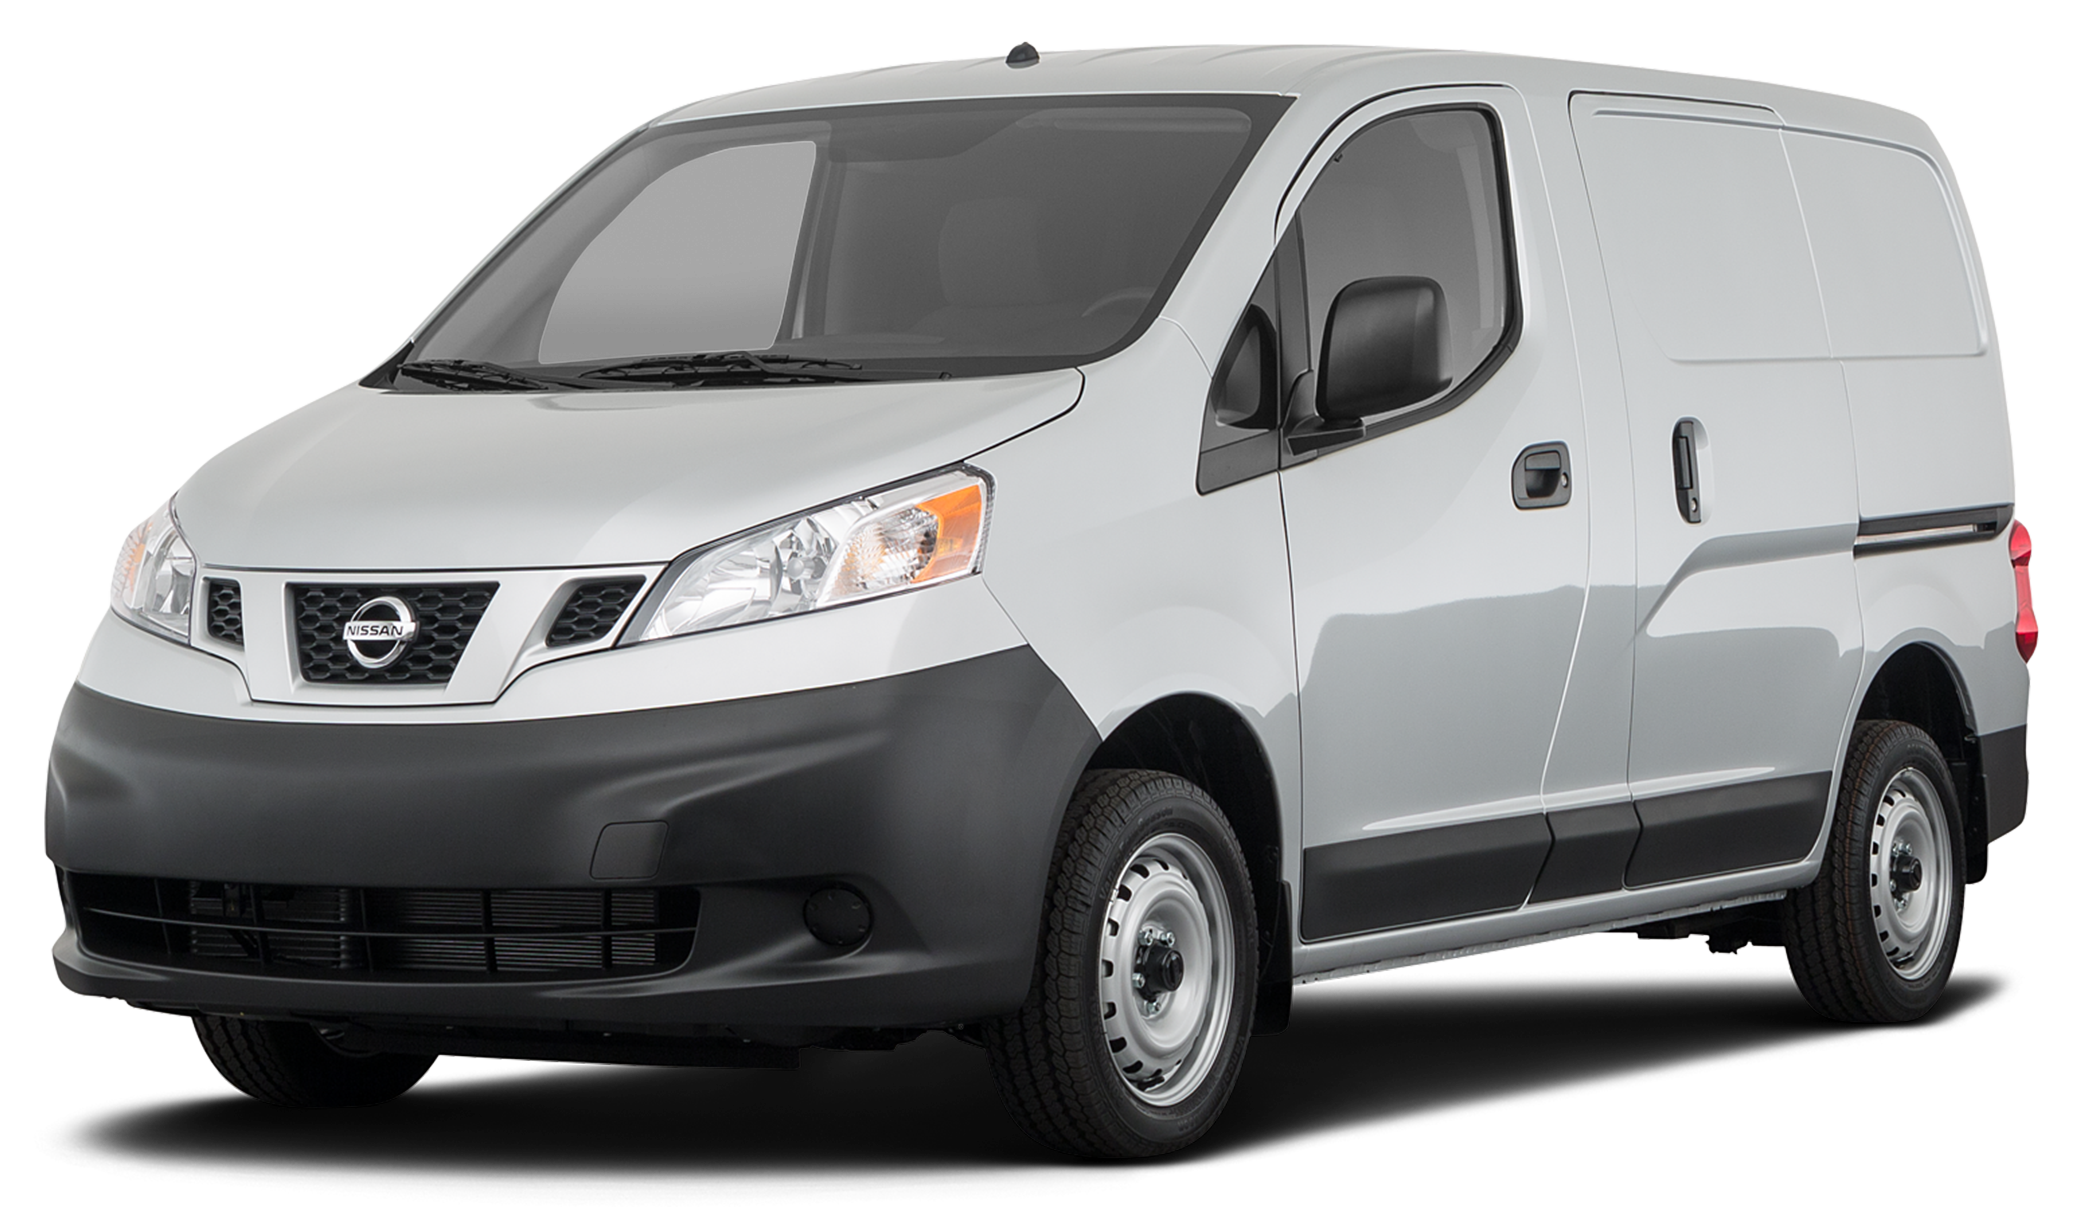 2019 Nissan NV200 Incentives, Specials & Offers in Cumming GA